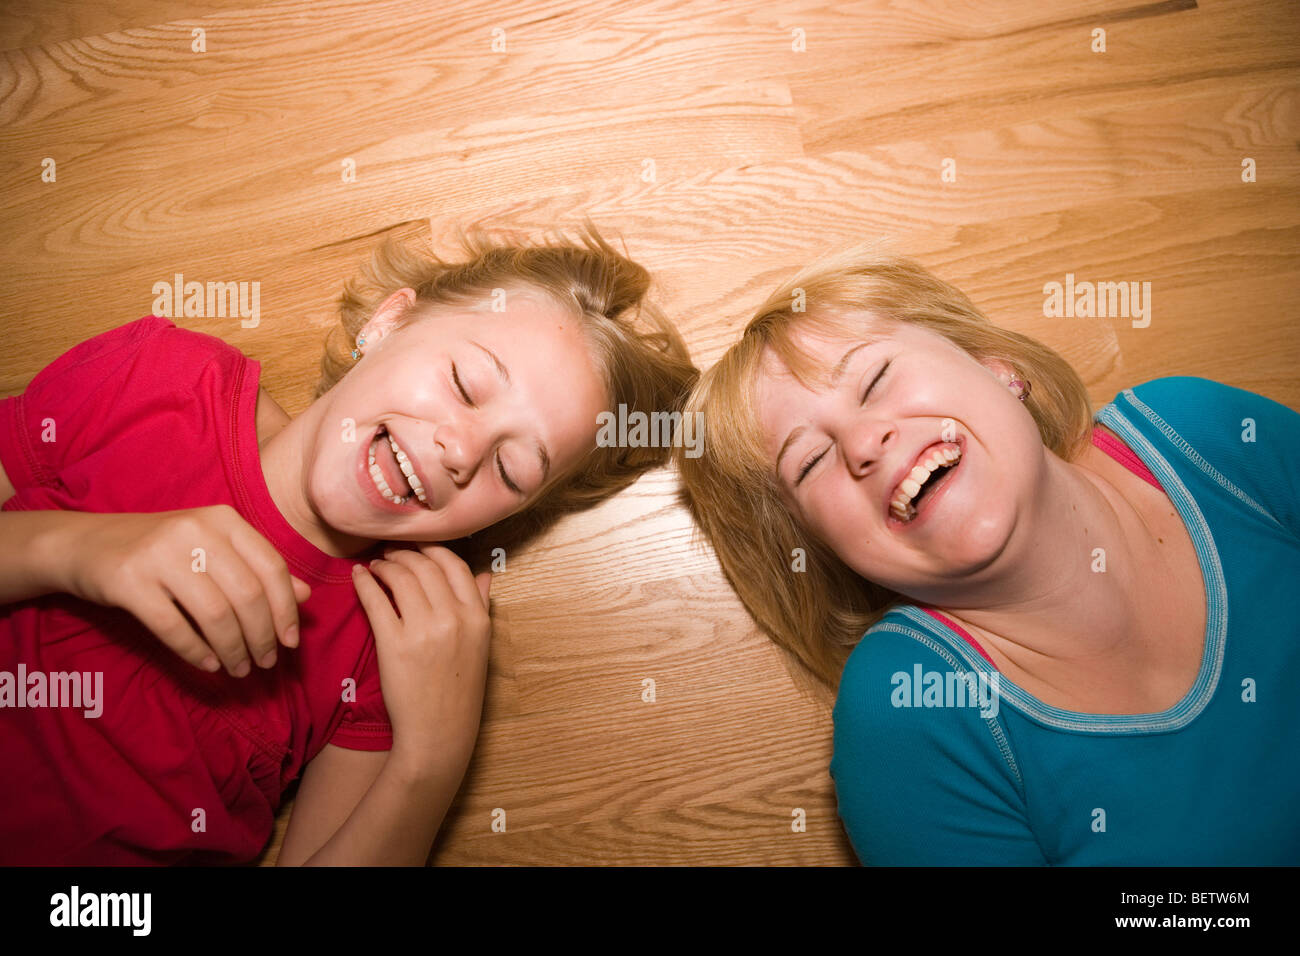 Two sisters laughing hysterically on a wood floor, ages 11 and 14 - Stock Image